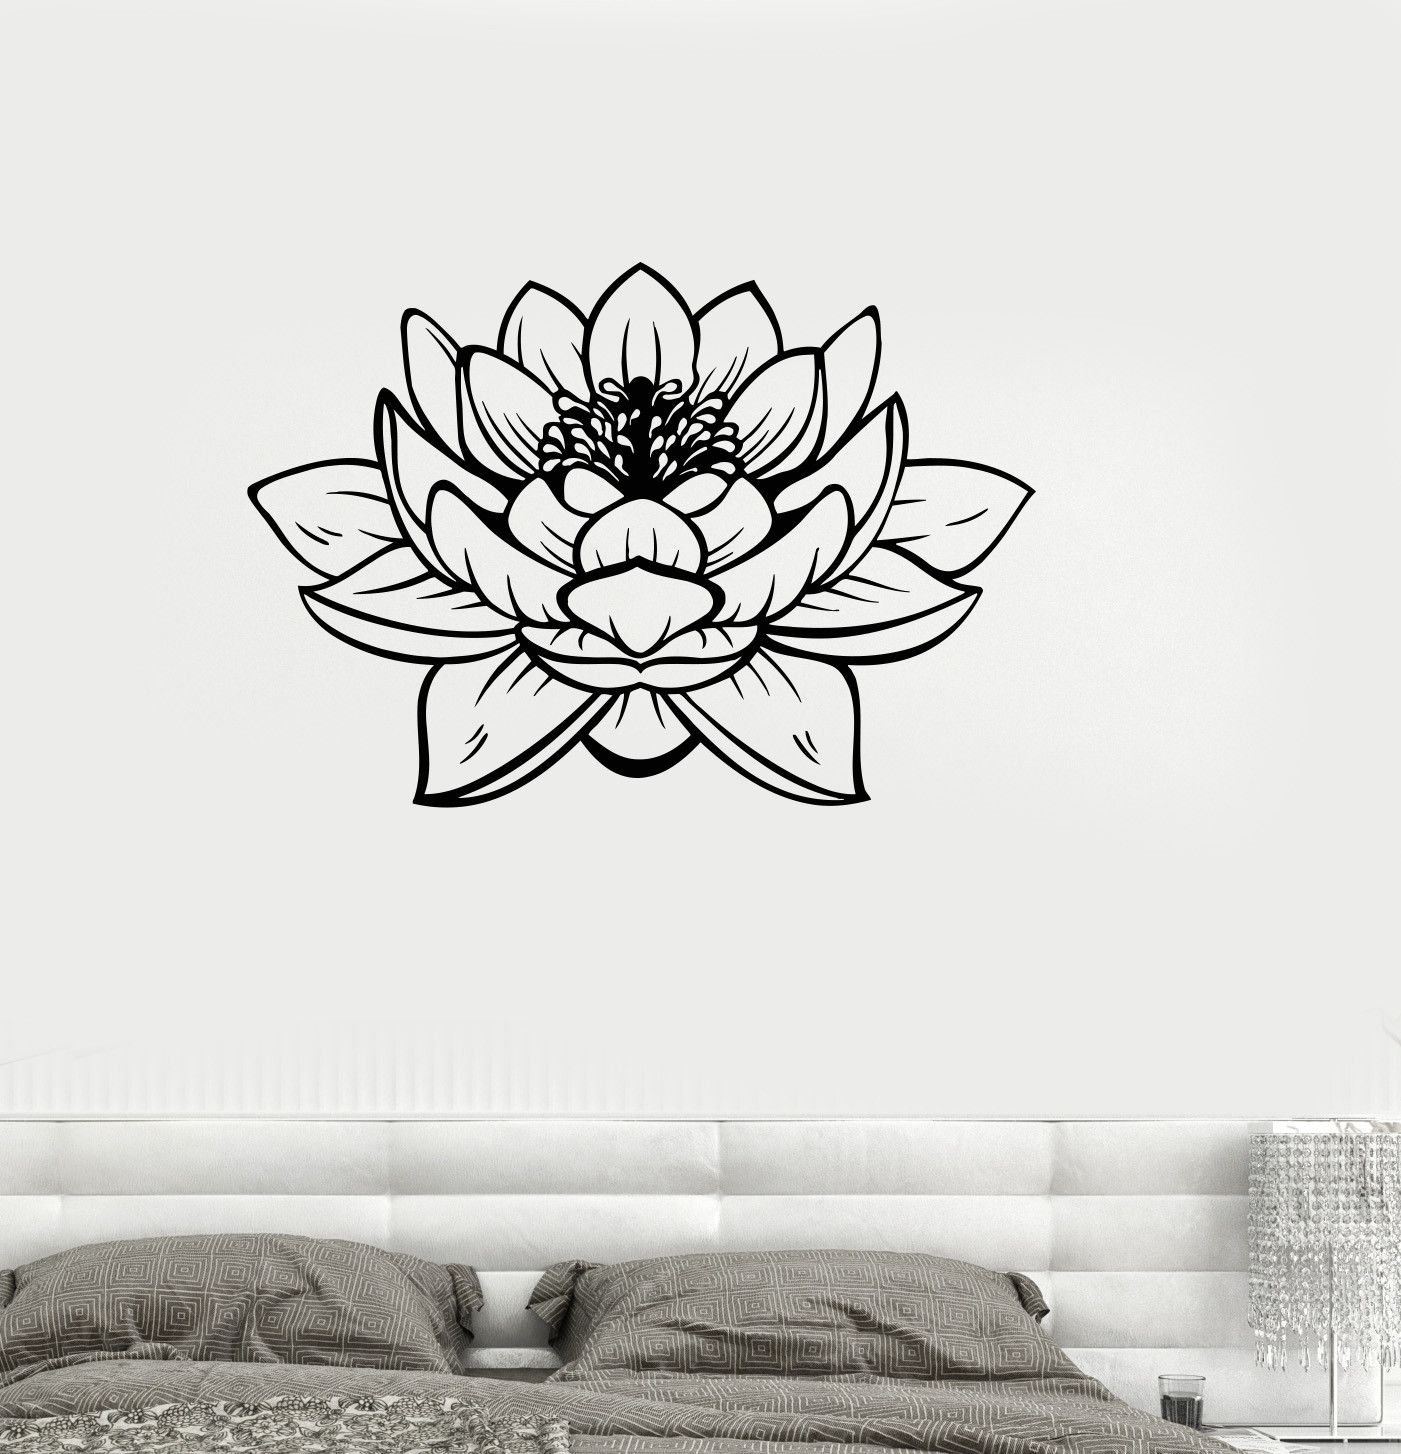 Vinyl Wall Decal Lotus Blossom Flower Yoga Studio Buddha Stickers